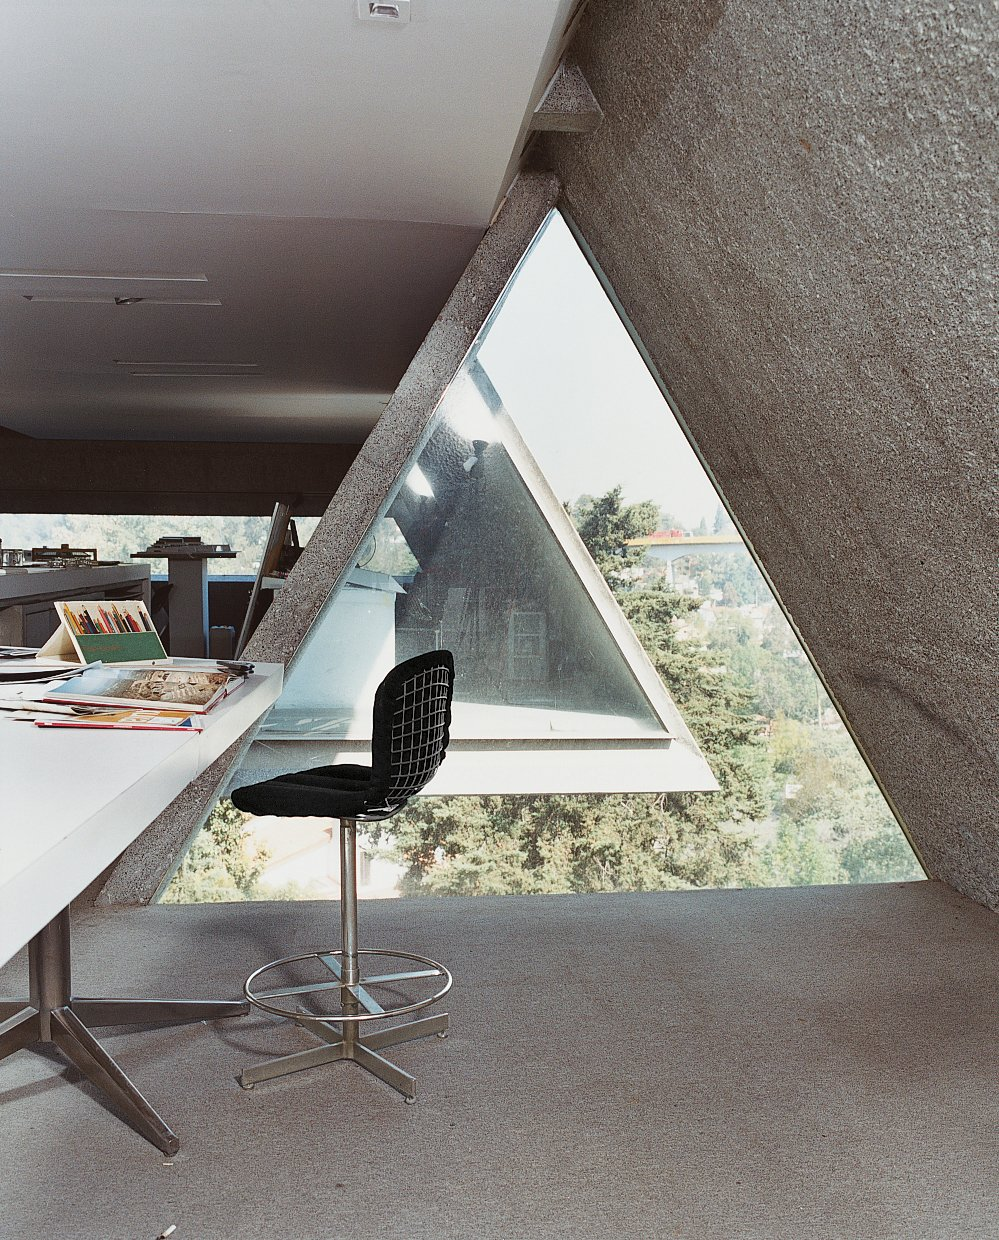 Agustín Hernandez's home office. Tagged: Office, Chair, Desk, and Concrete Floor.  Home Offices and Workspaces We Love by Matthew Keeshin from Hecho in Mexico City